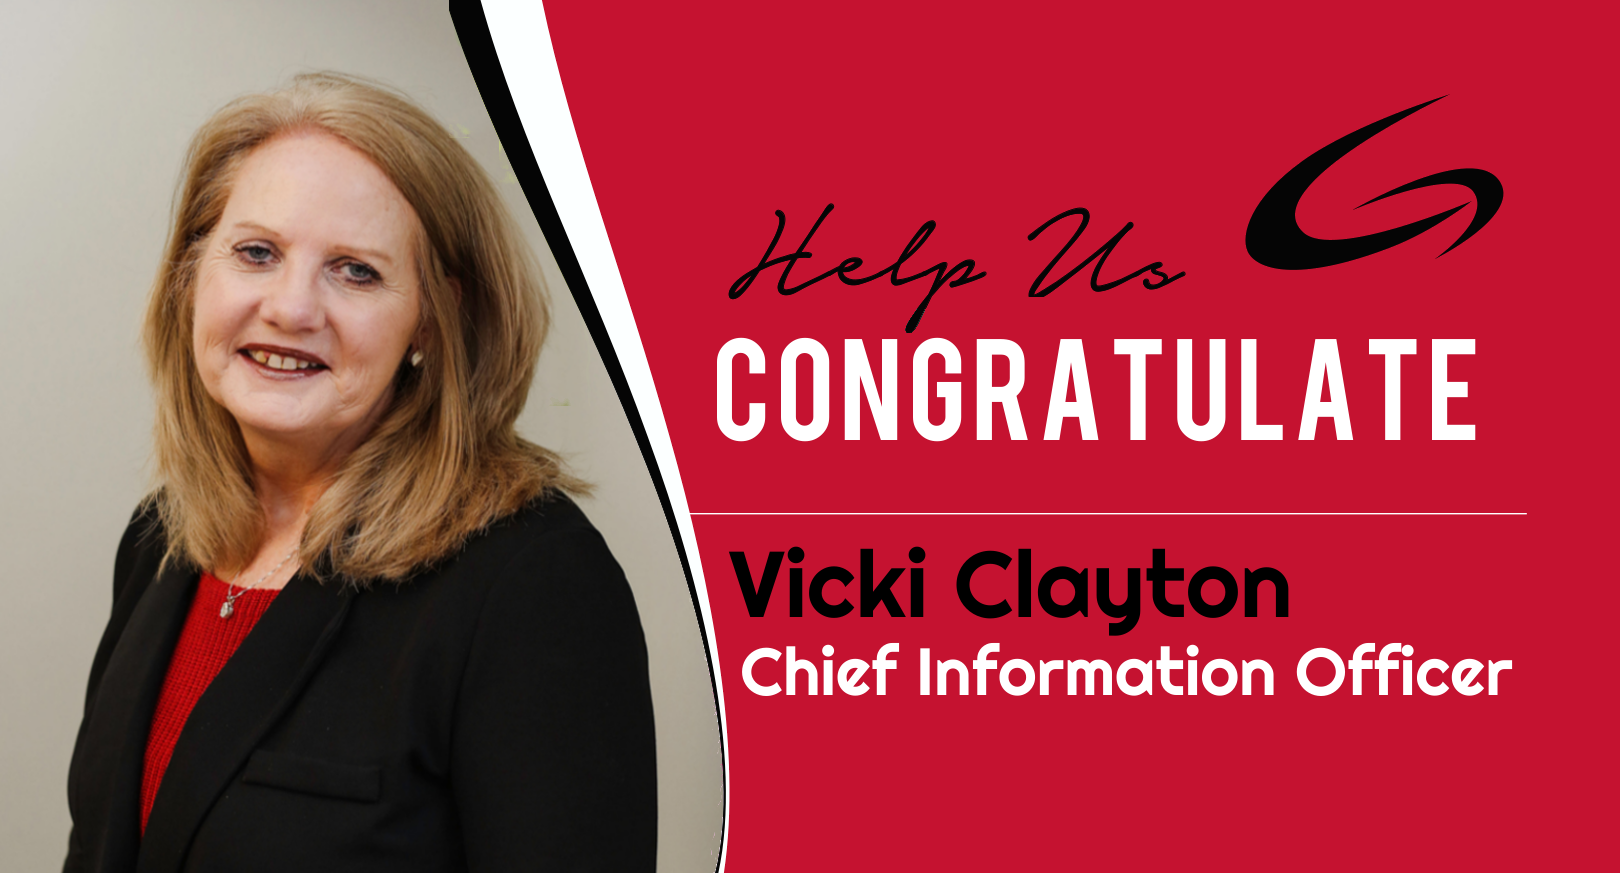 Congratulations to Vicki Clayton on becoming our Chief Information Officer!